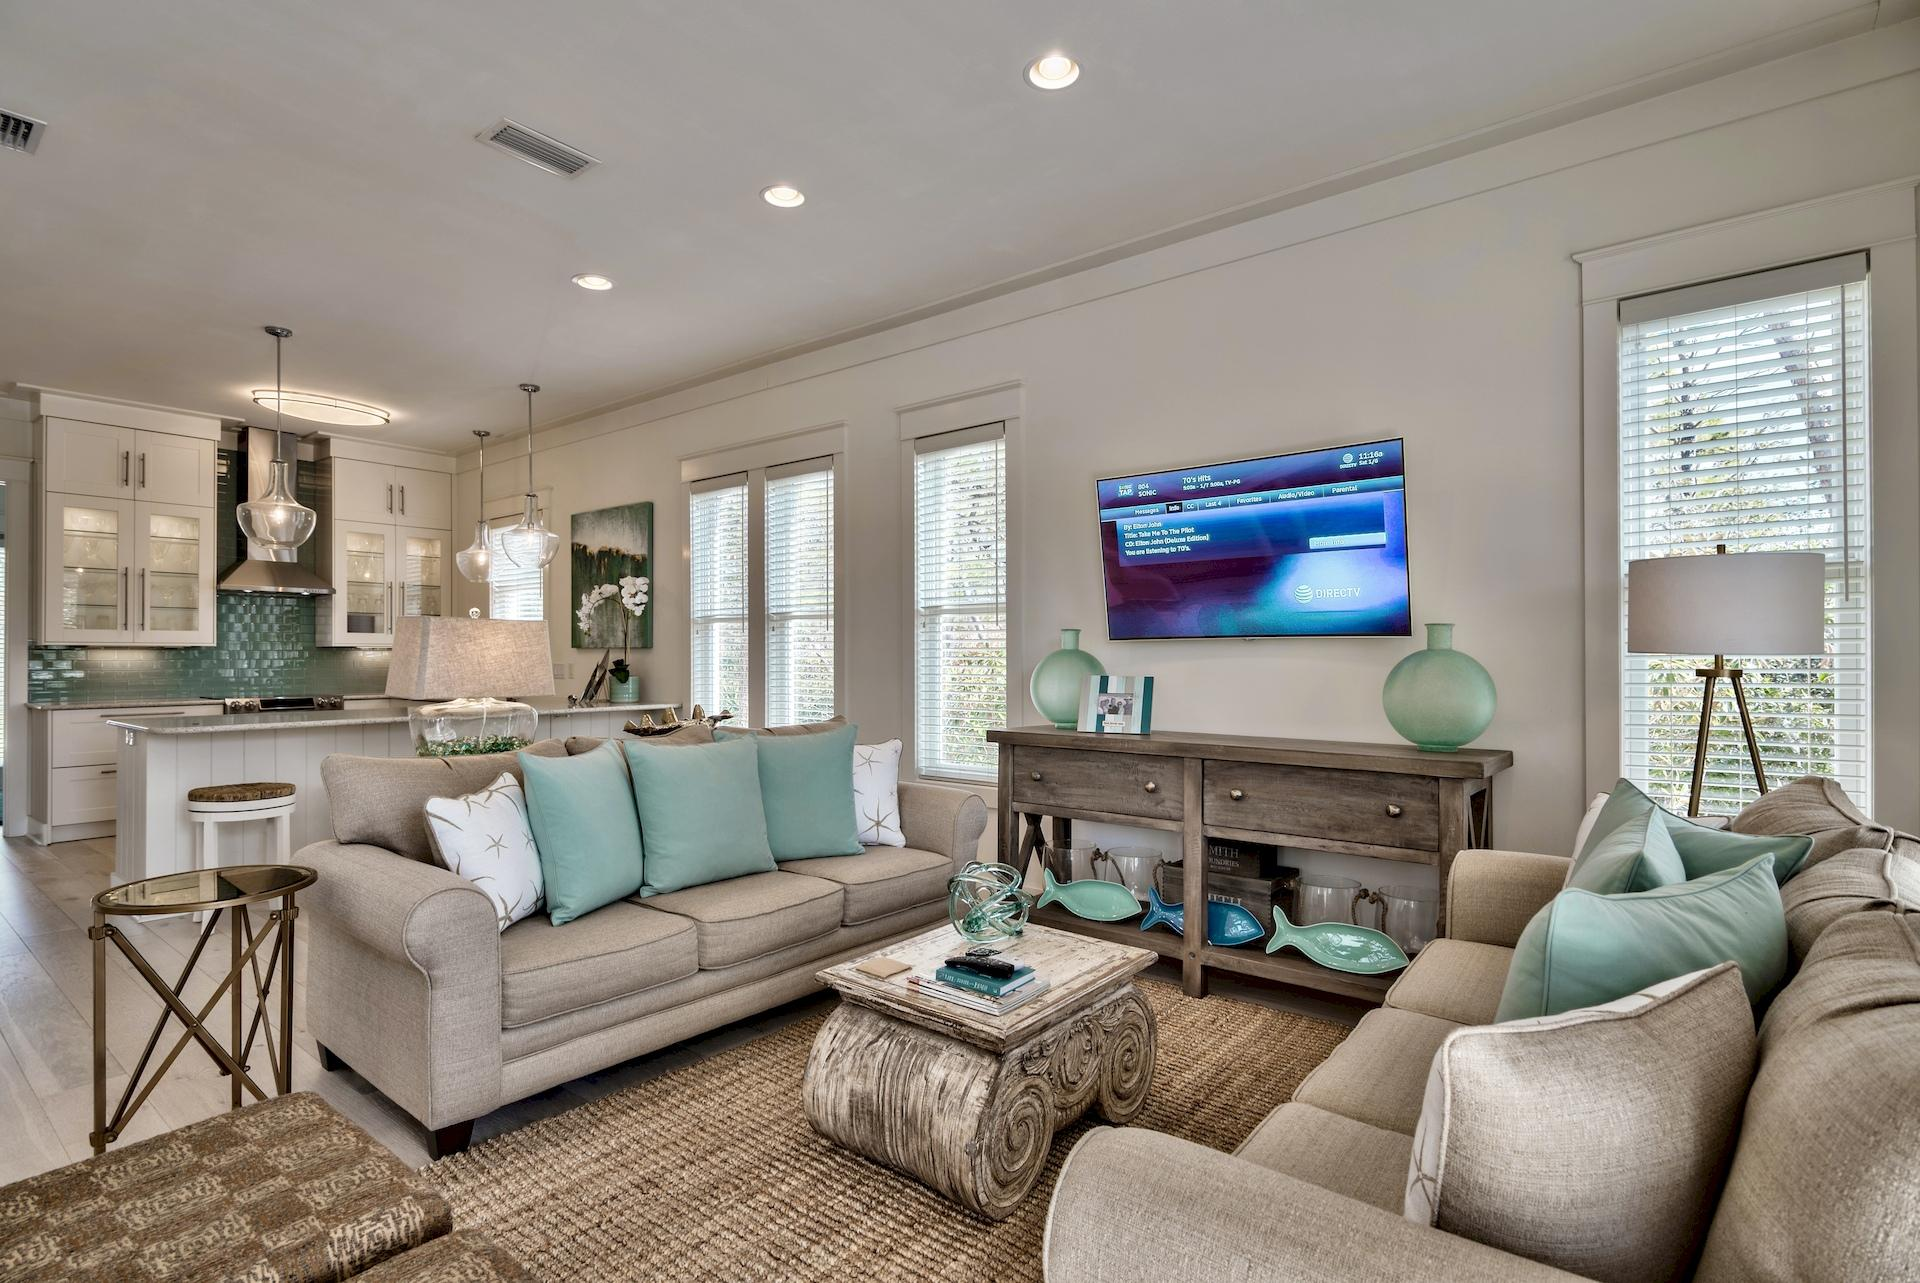 A 4 Bedroom 4 Bedroom The Preserve At Grayton Beach Home